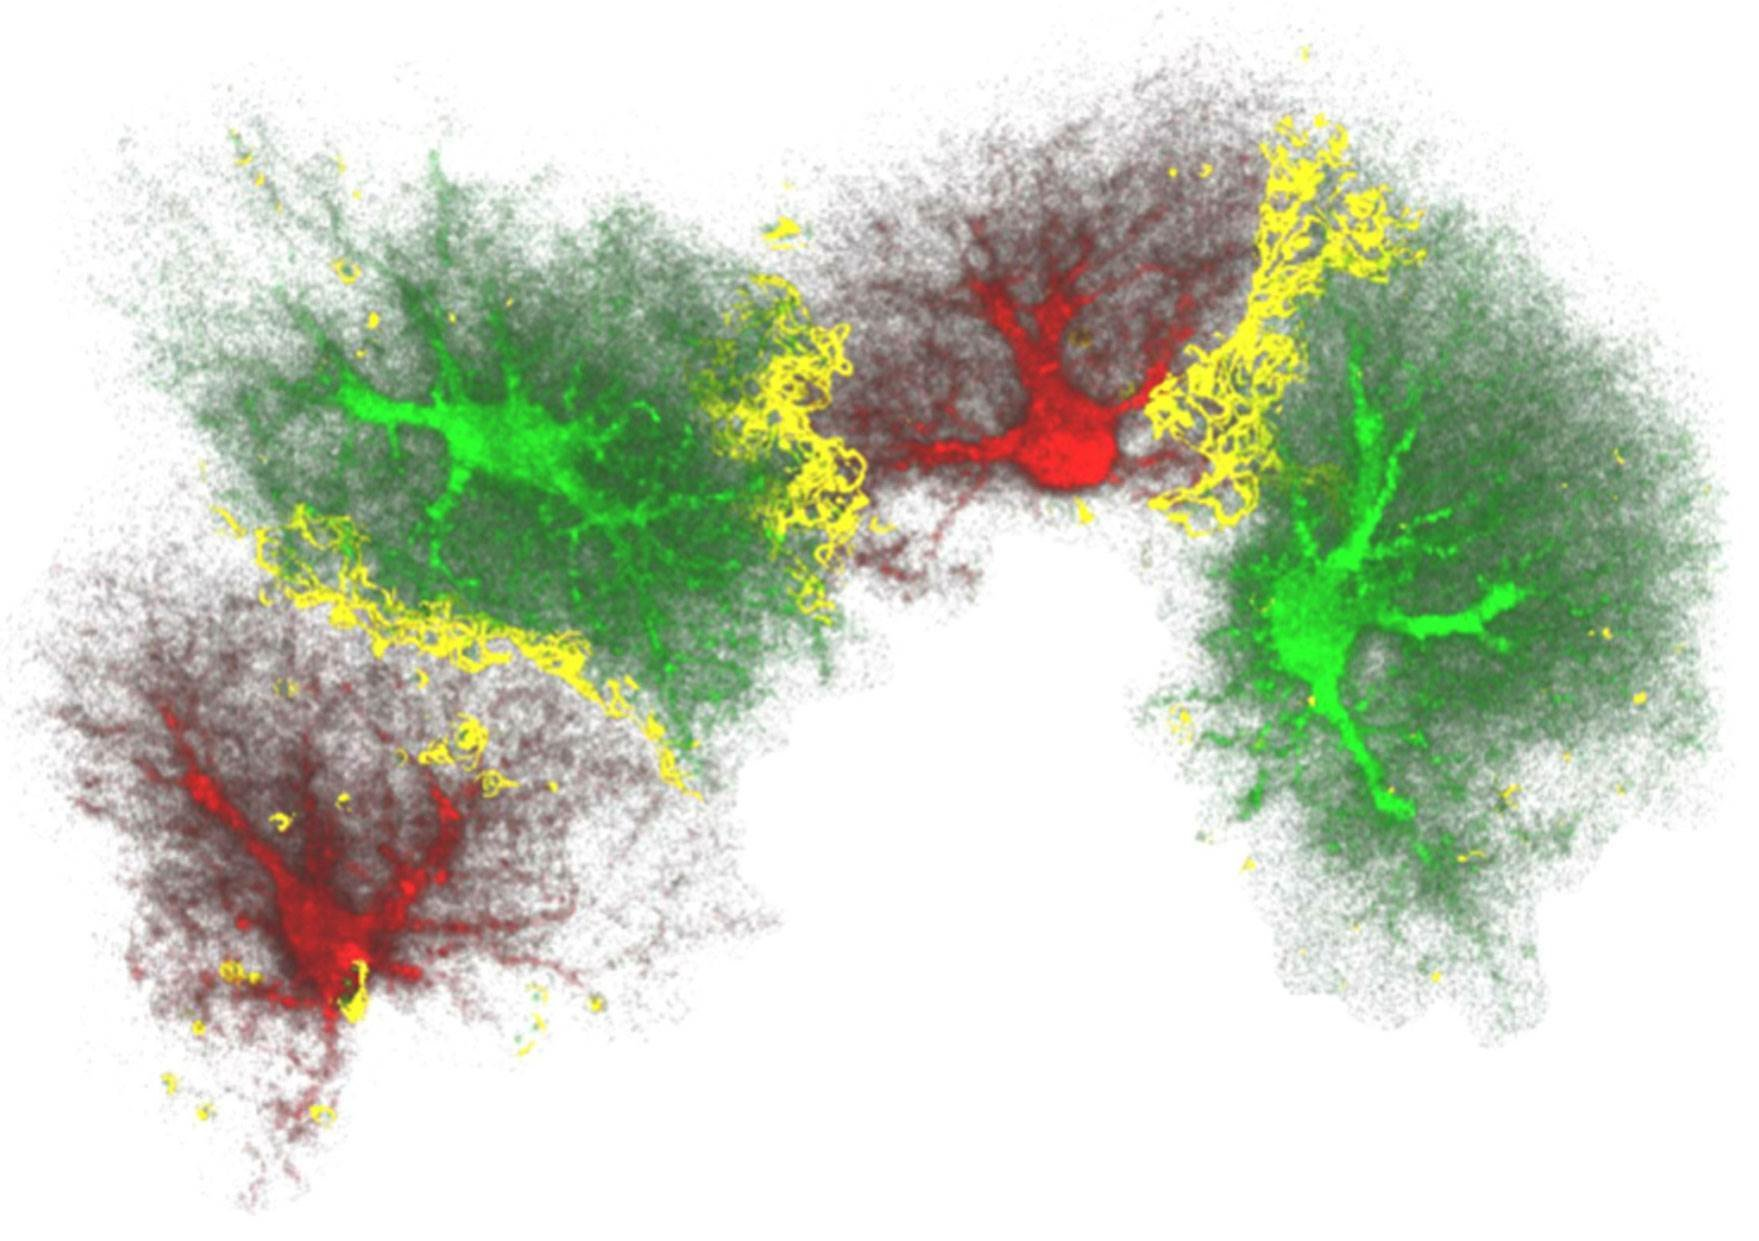 New insight into the generation of new neurons in the adult brain